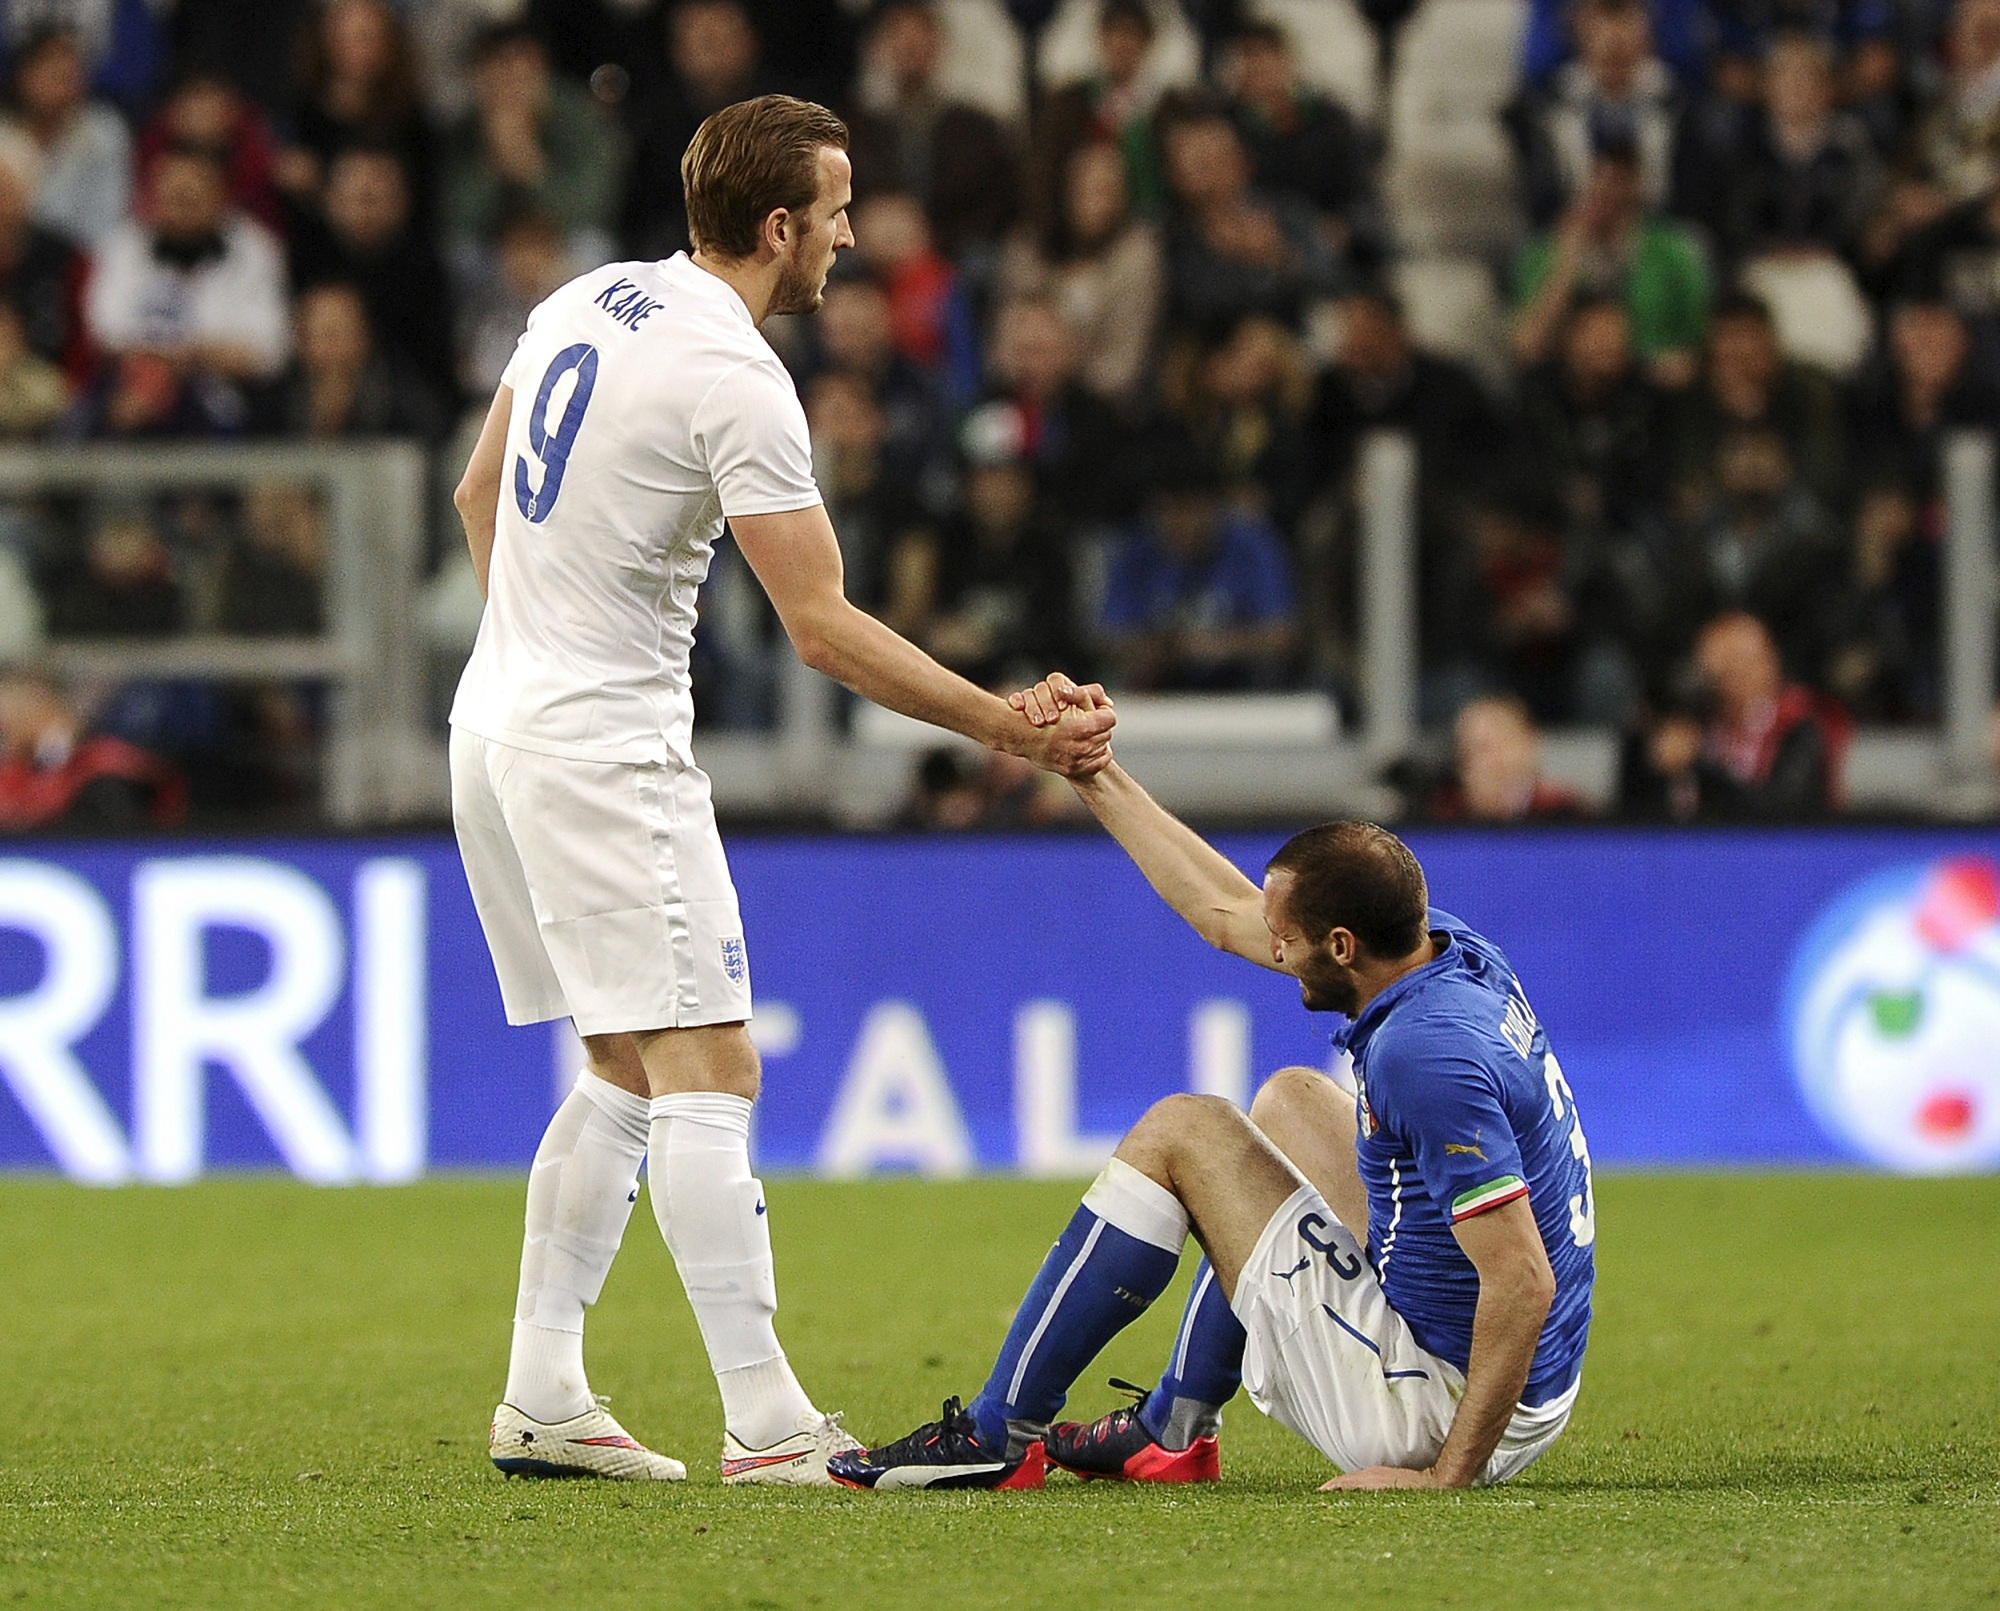 Kane (left) and Chiellini during an international friendly between England and Italy in 2015 | Picture courtesy: Reuters